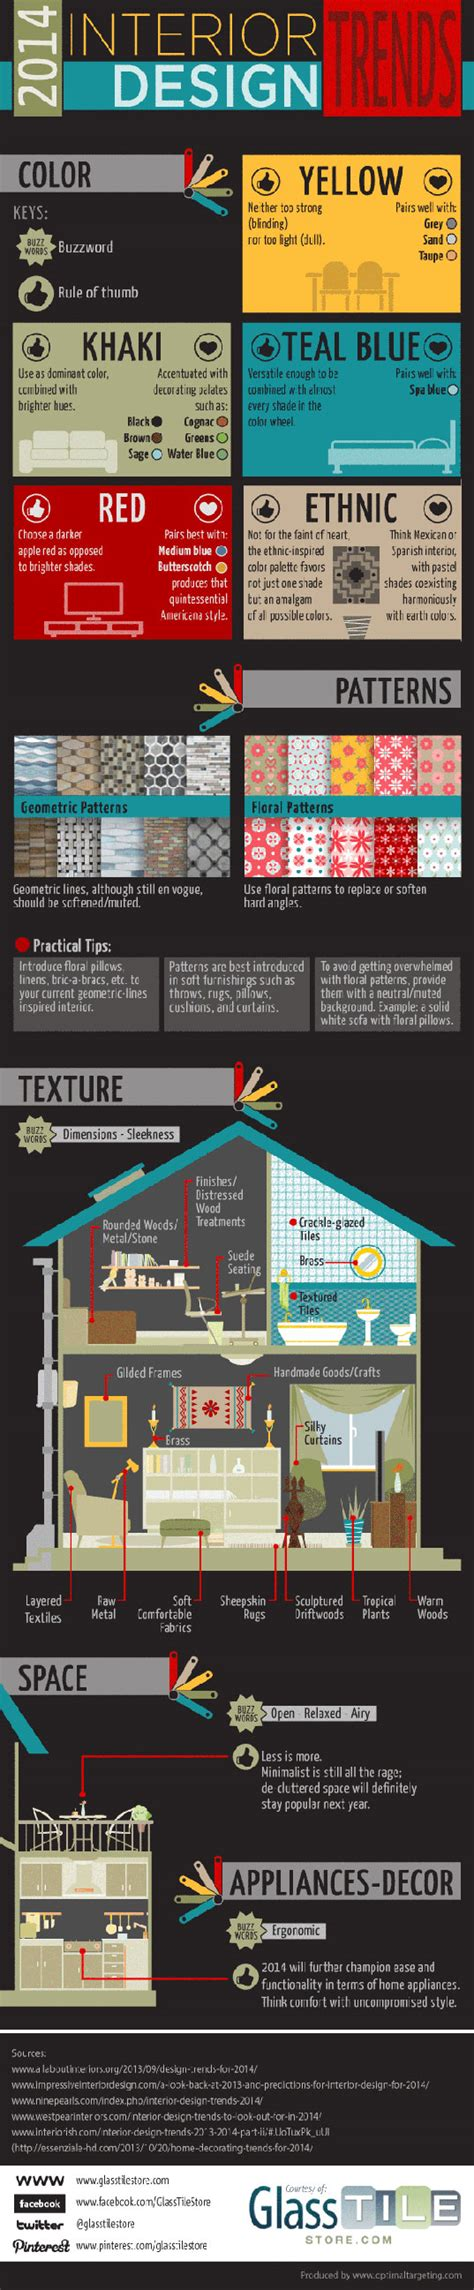 2014 home decor color trends infographic interior design trends for 2014 inhabitat green design innovation